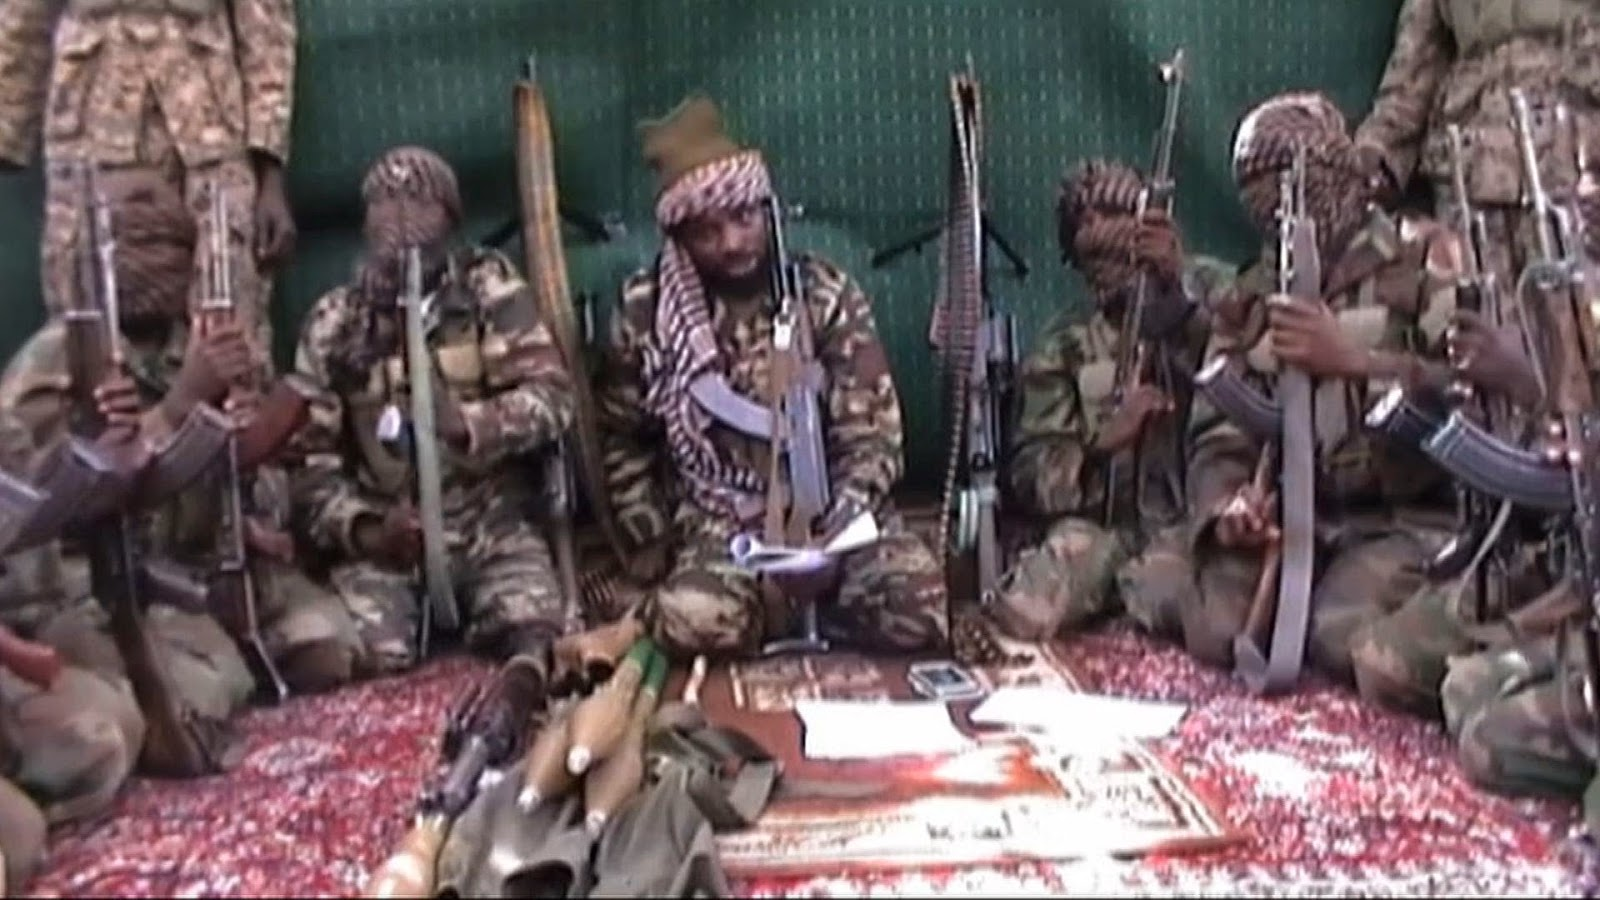 BREAKING NEWS: Ongoing Attack in 'Kautikari' a Village Near 'Chibok '